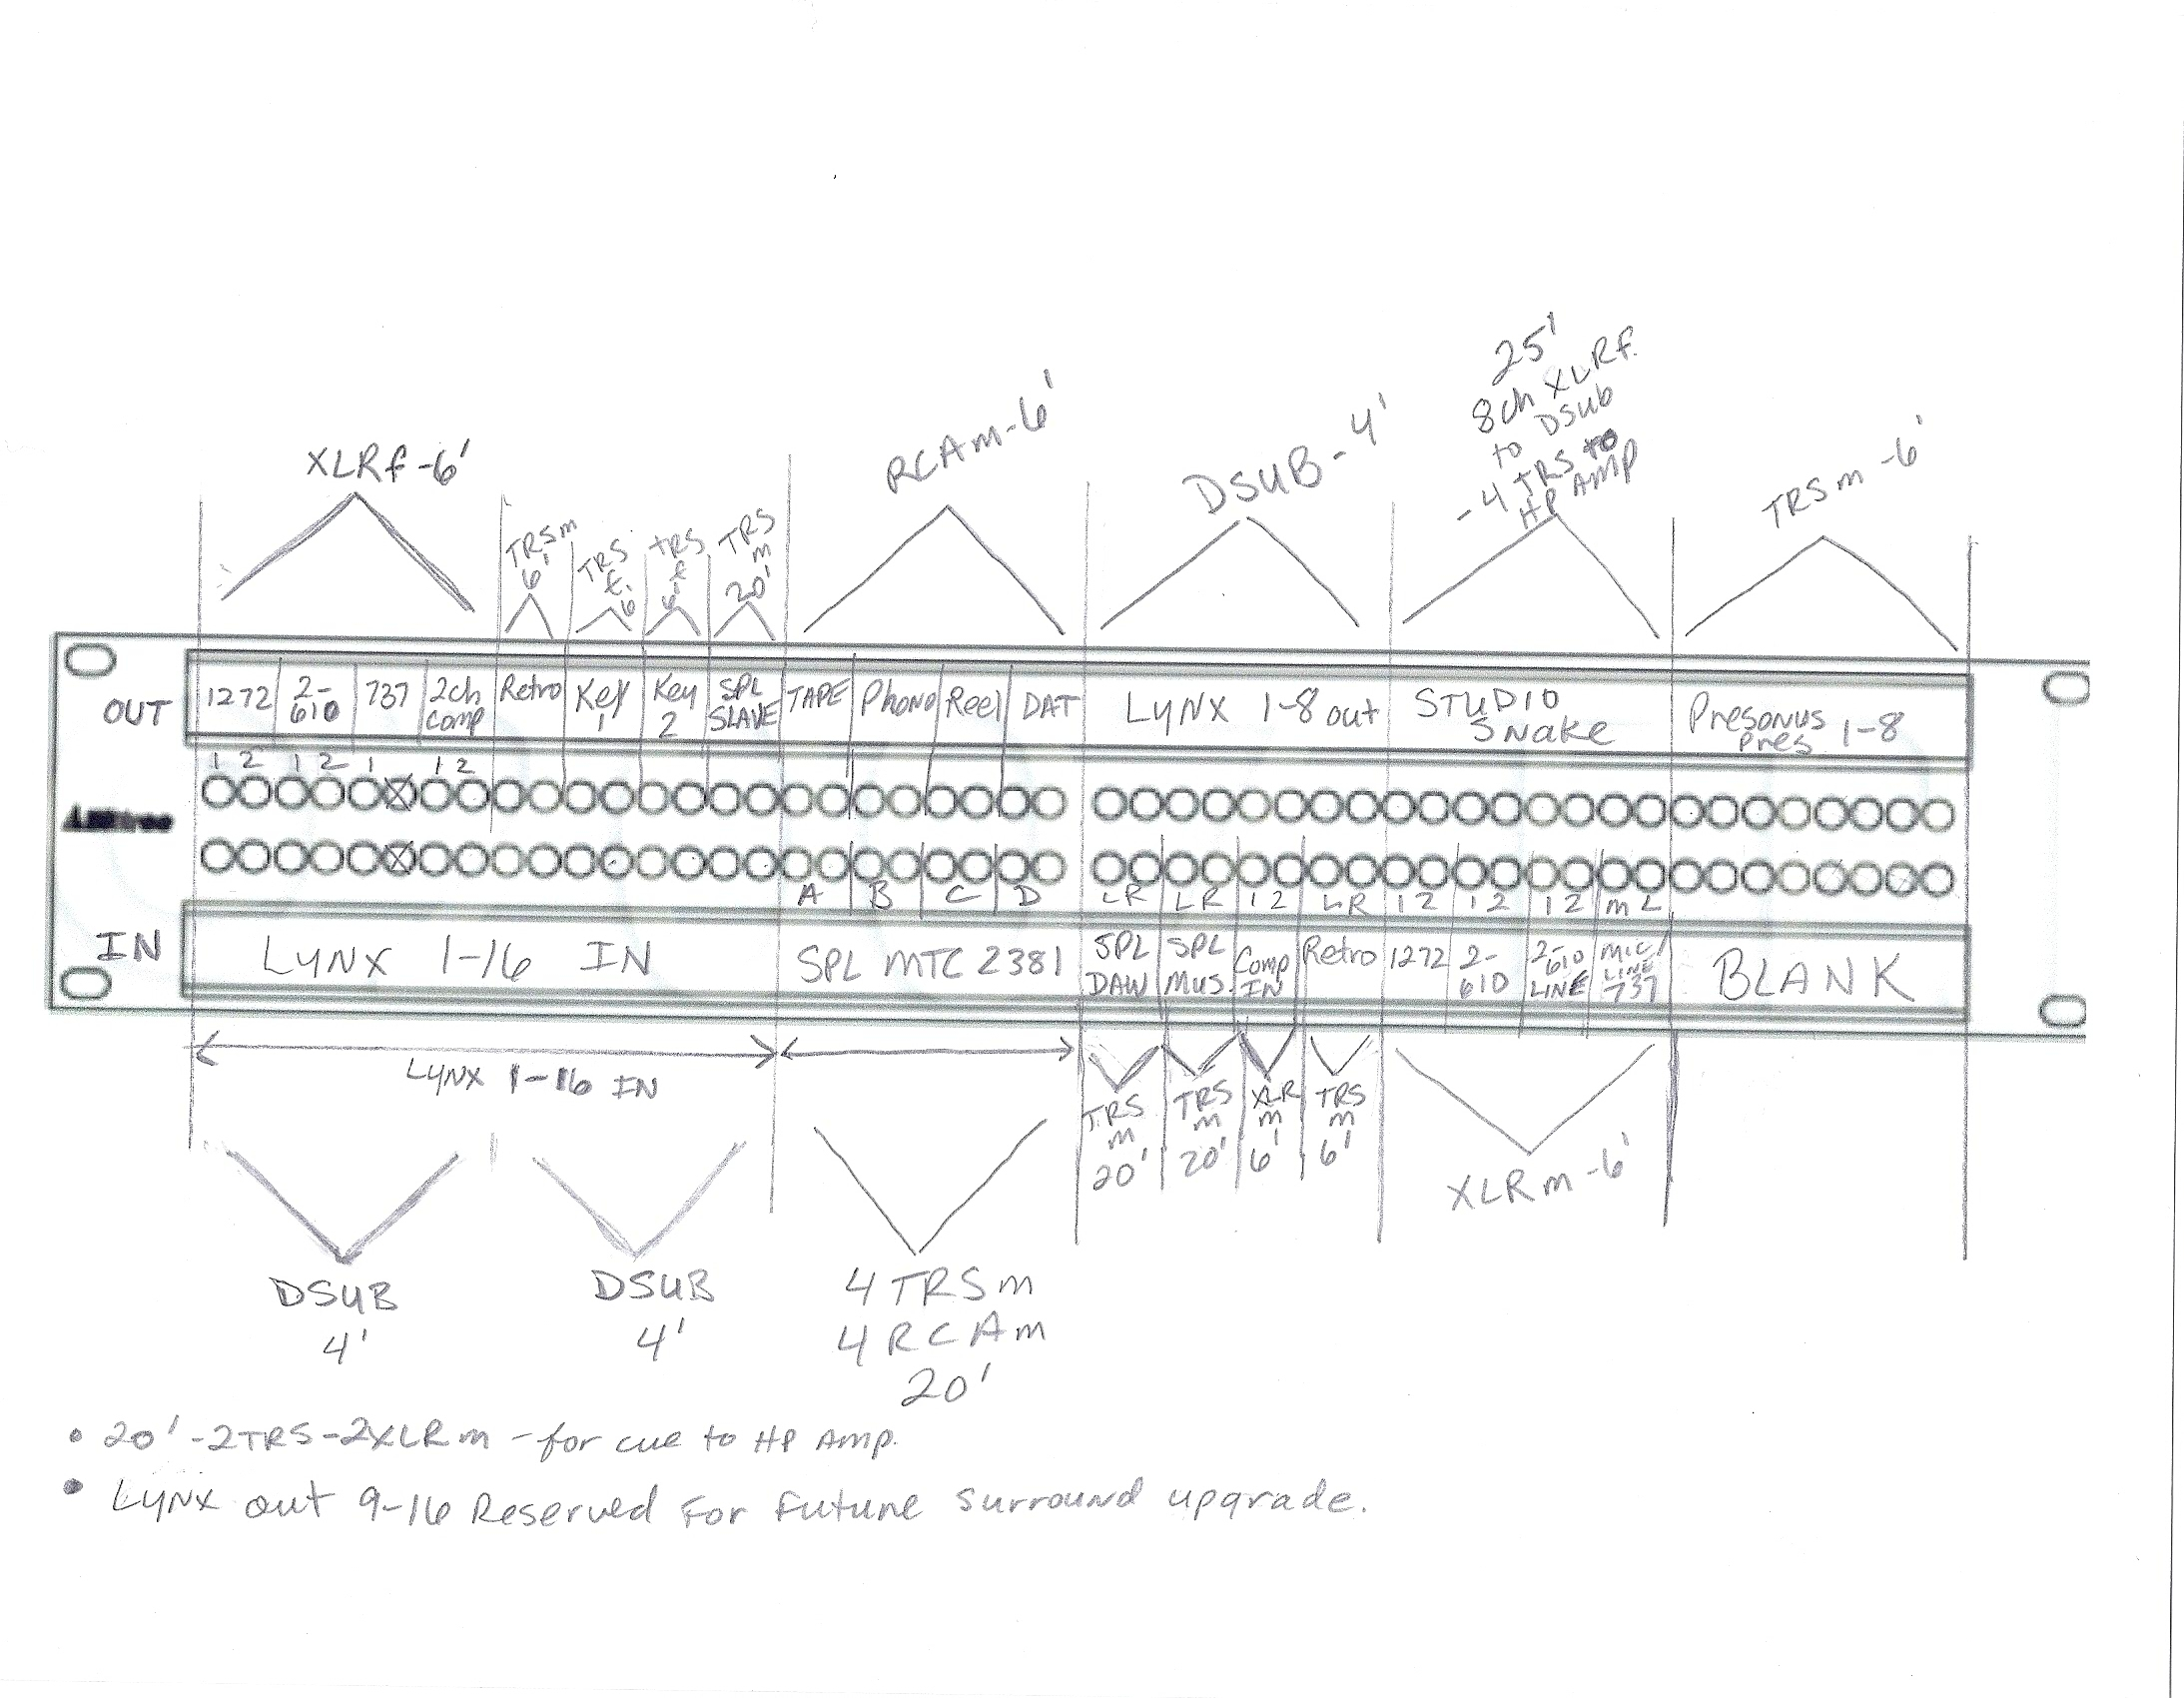 tt patchbay setup diagram  opinions  jpg and pdf attached